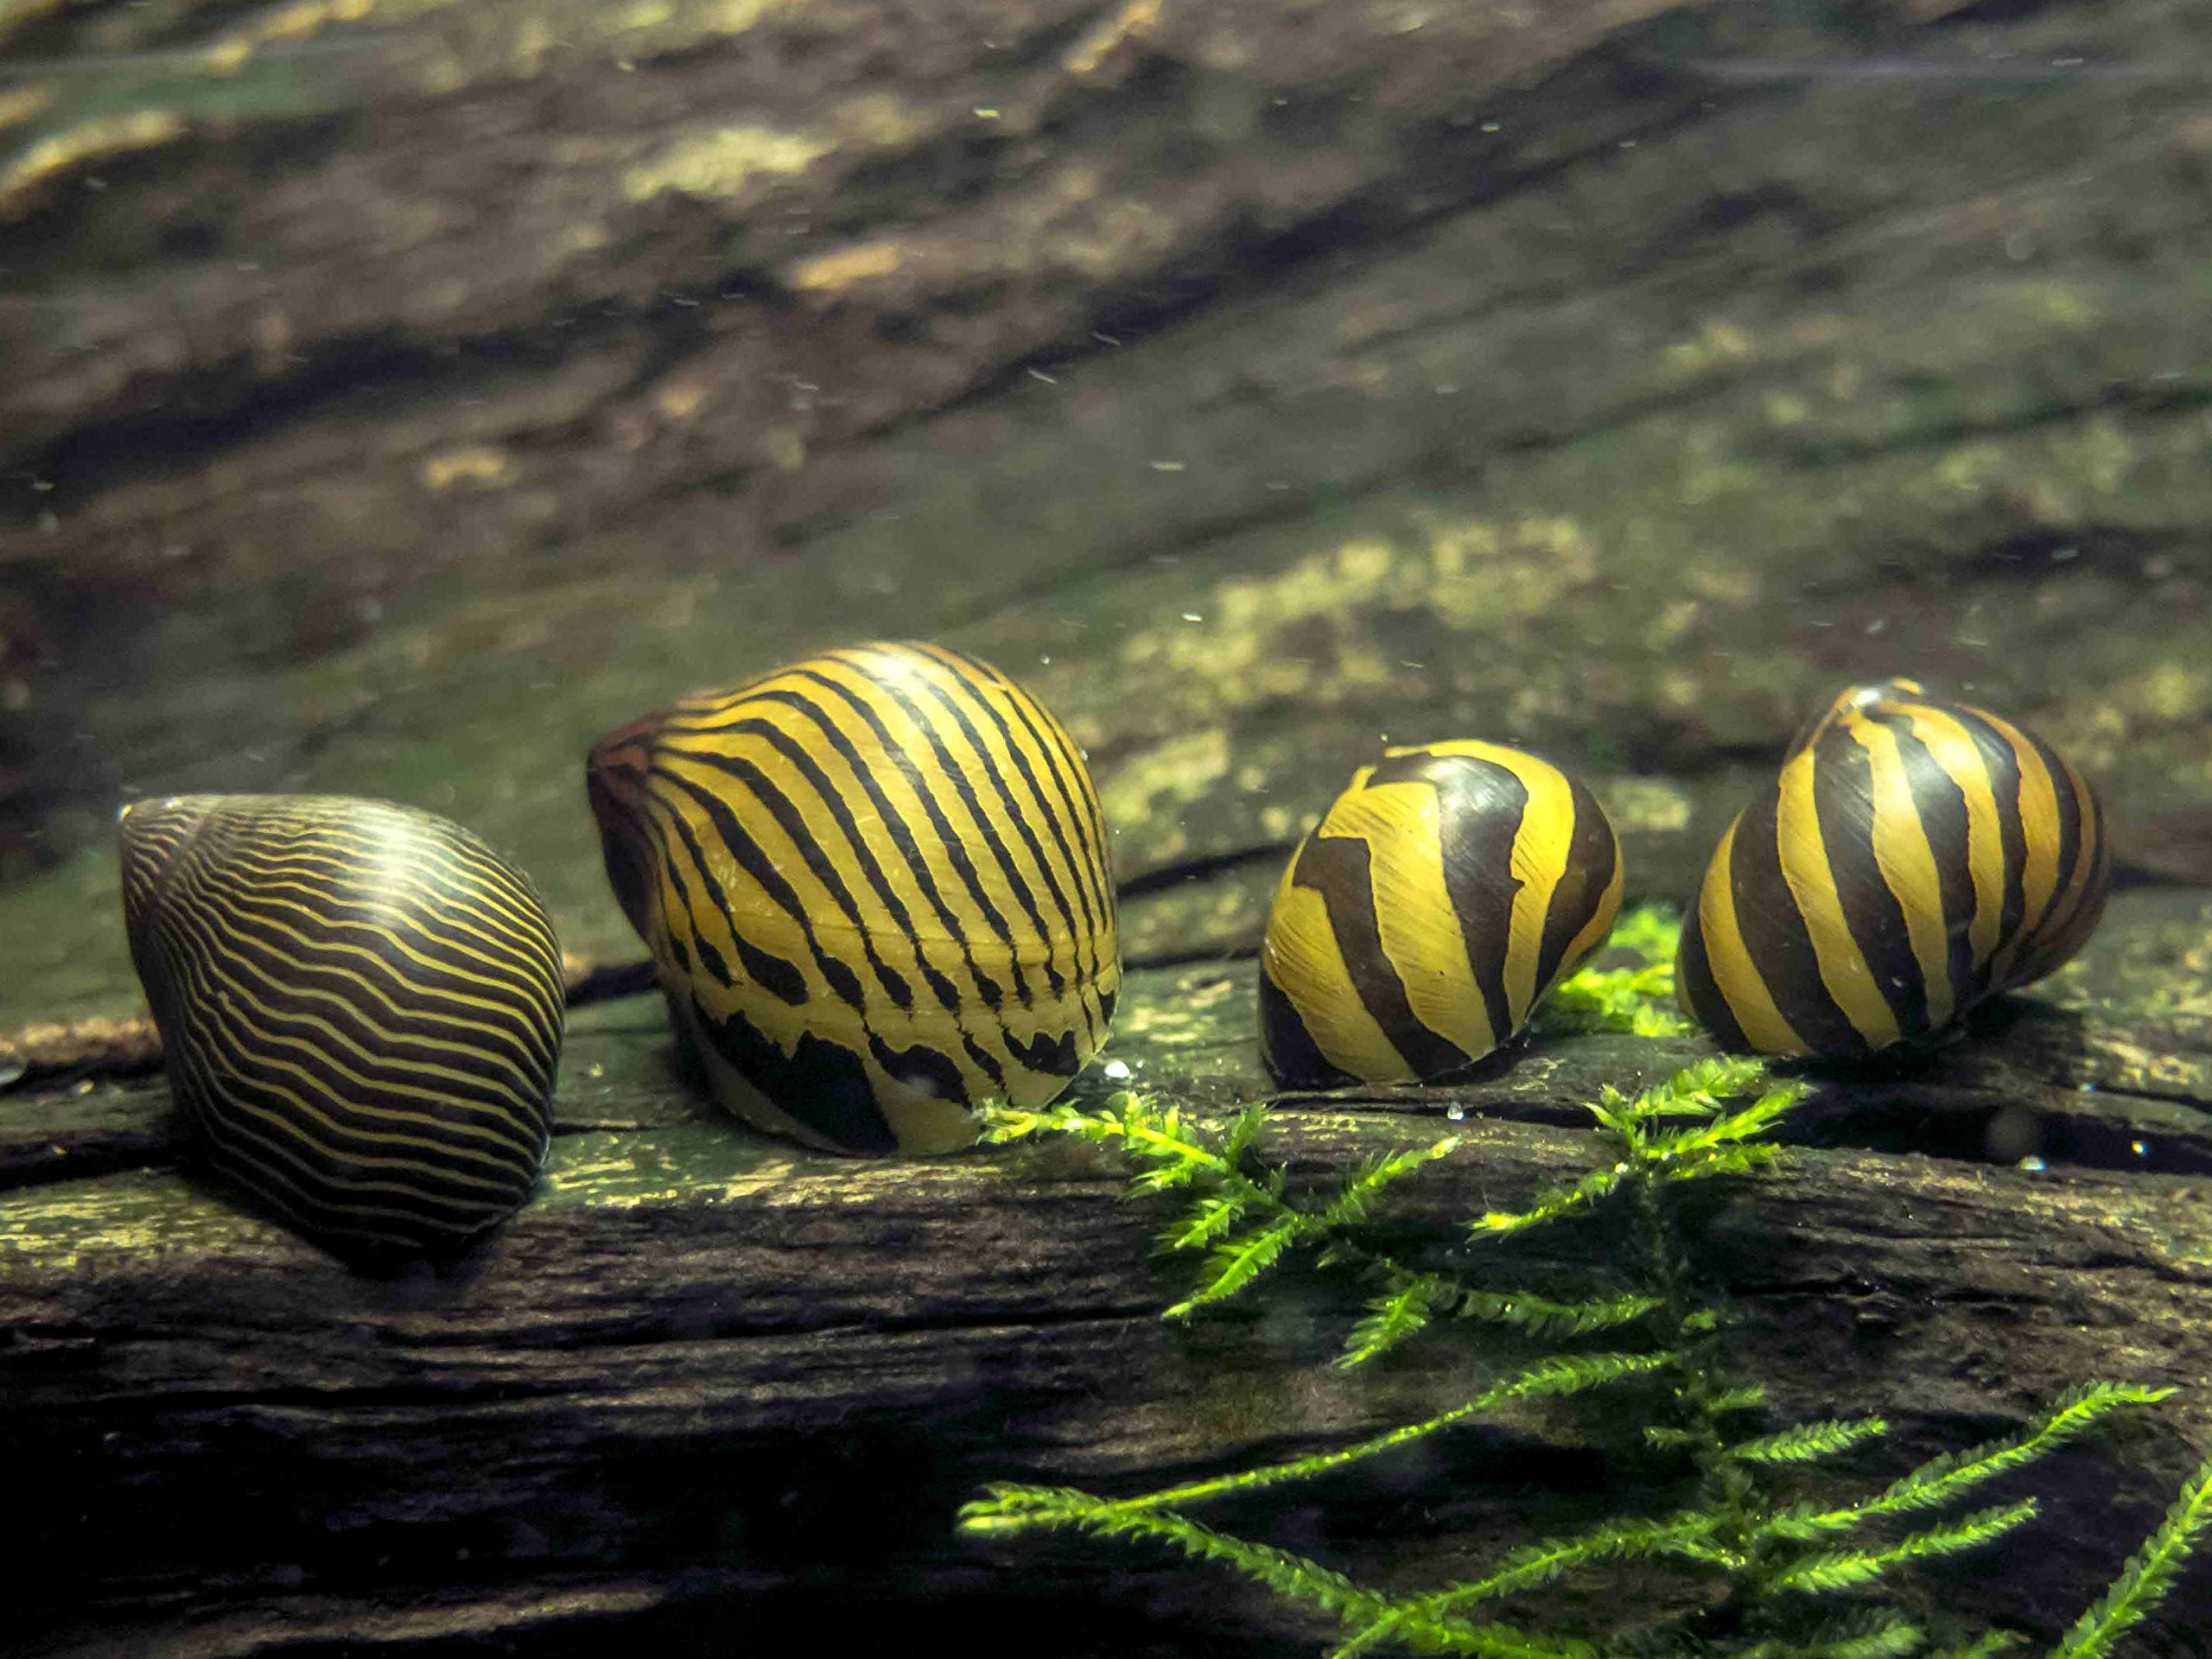 Aquatic Arts 20 Live Zebra Nerite Snails | Algae Scrubber | Nano Aquarium Gravel Cleaner/Filter | Freshwater Invertebrate/Fish Tank Decorations by Aquatic Arts